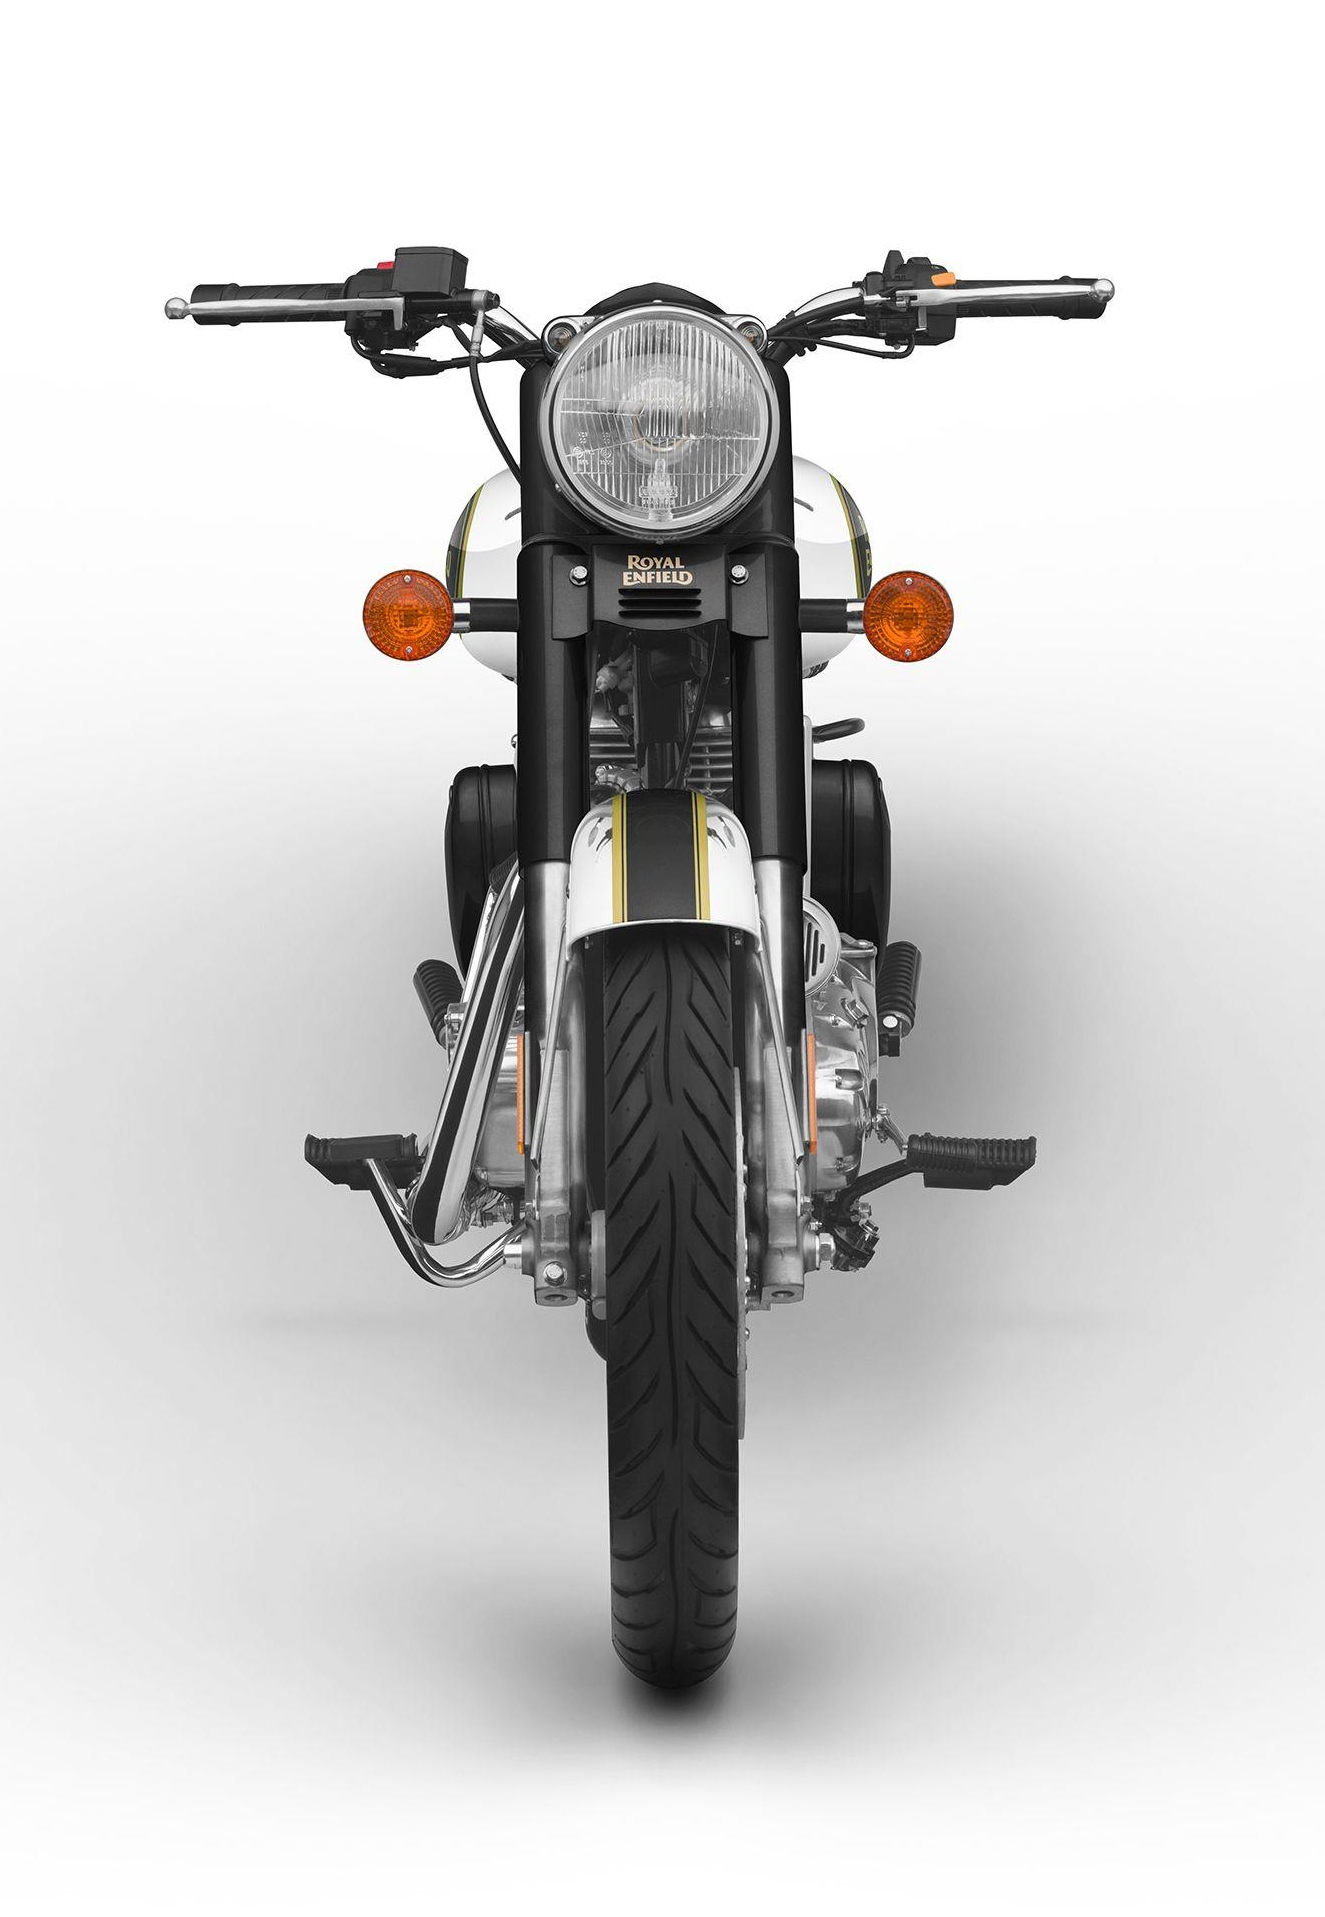 royalenfield_classic_chrome_black_03jpg